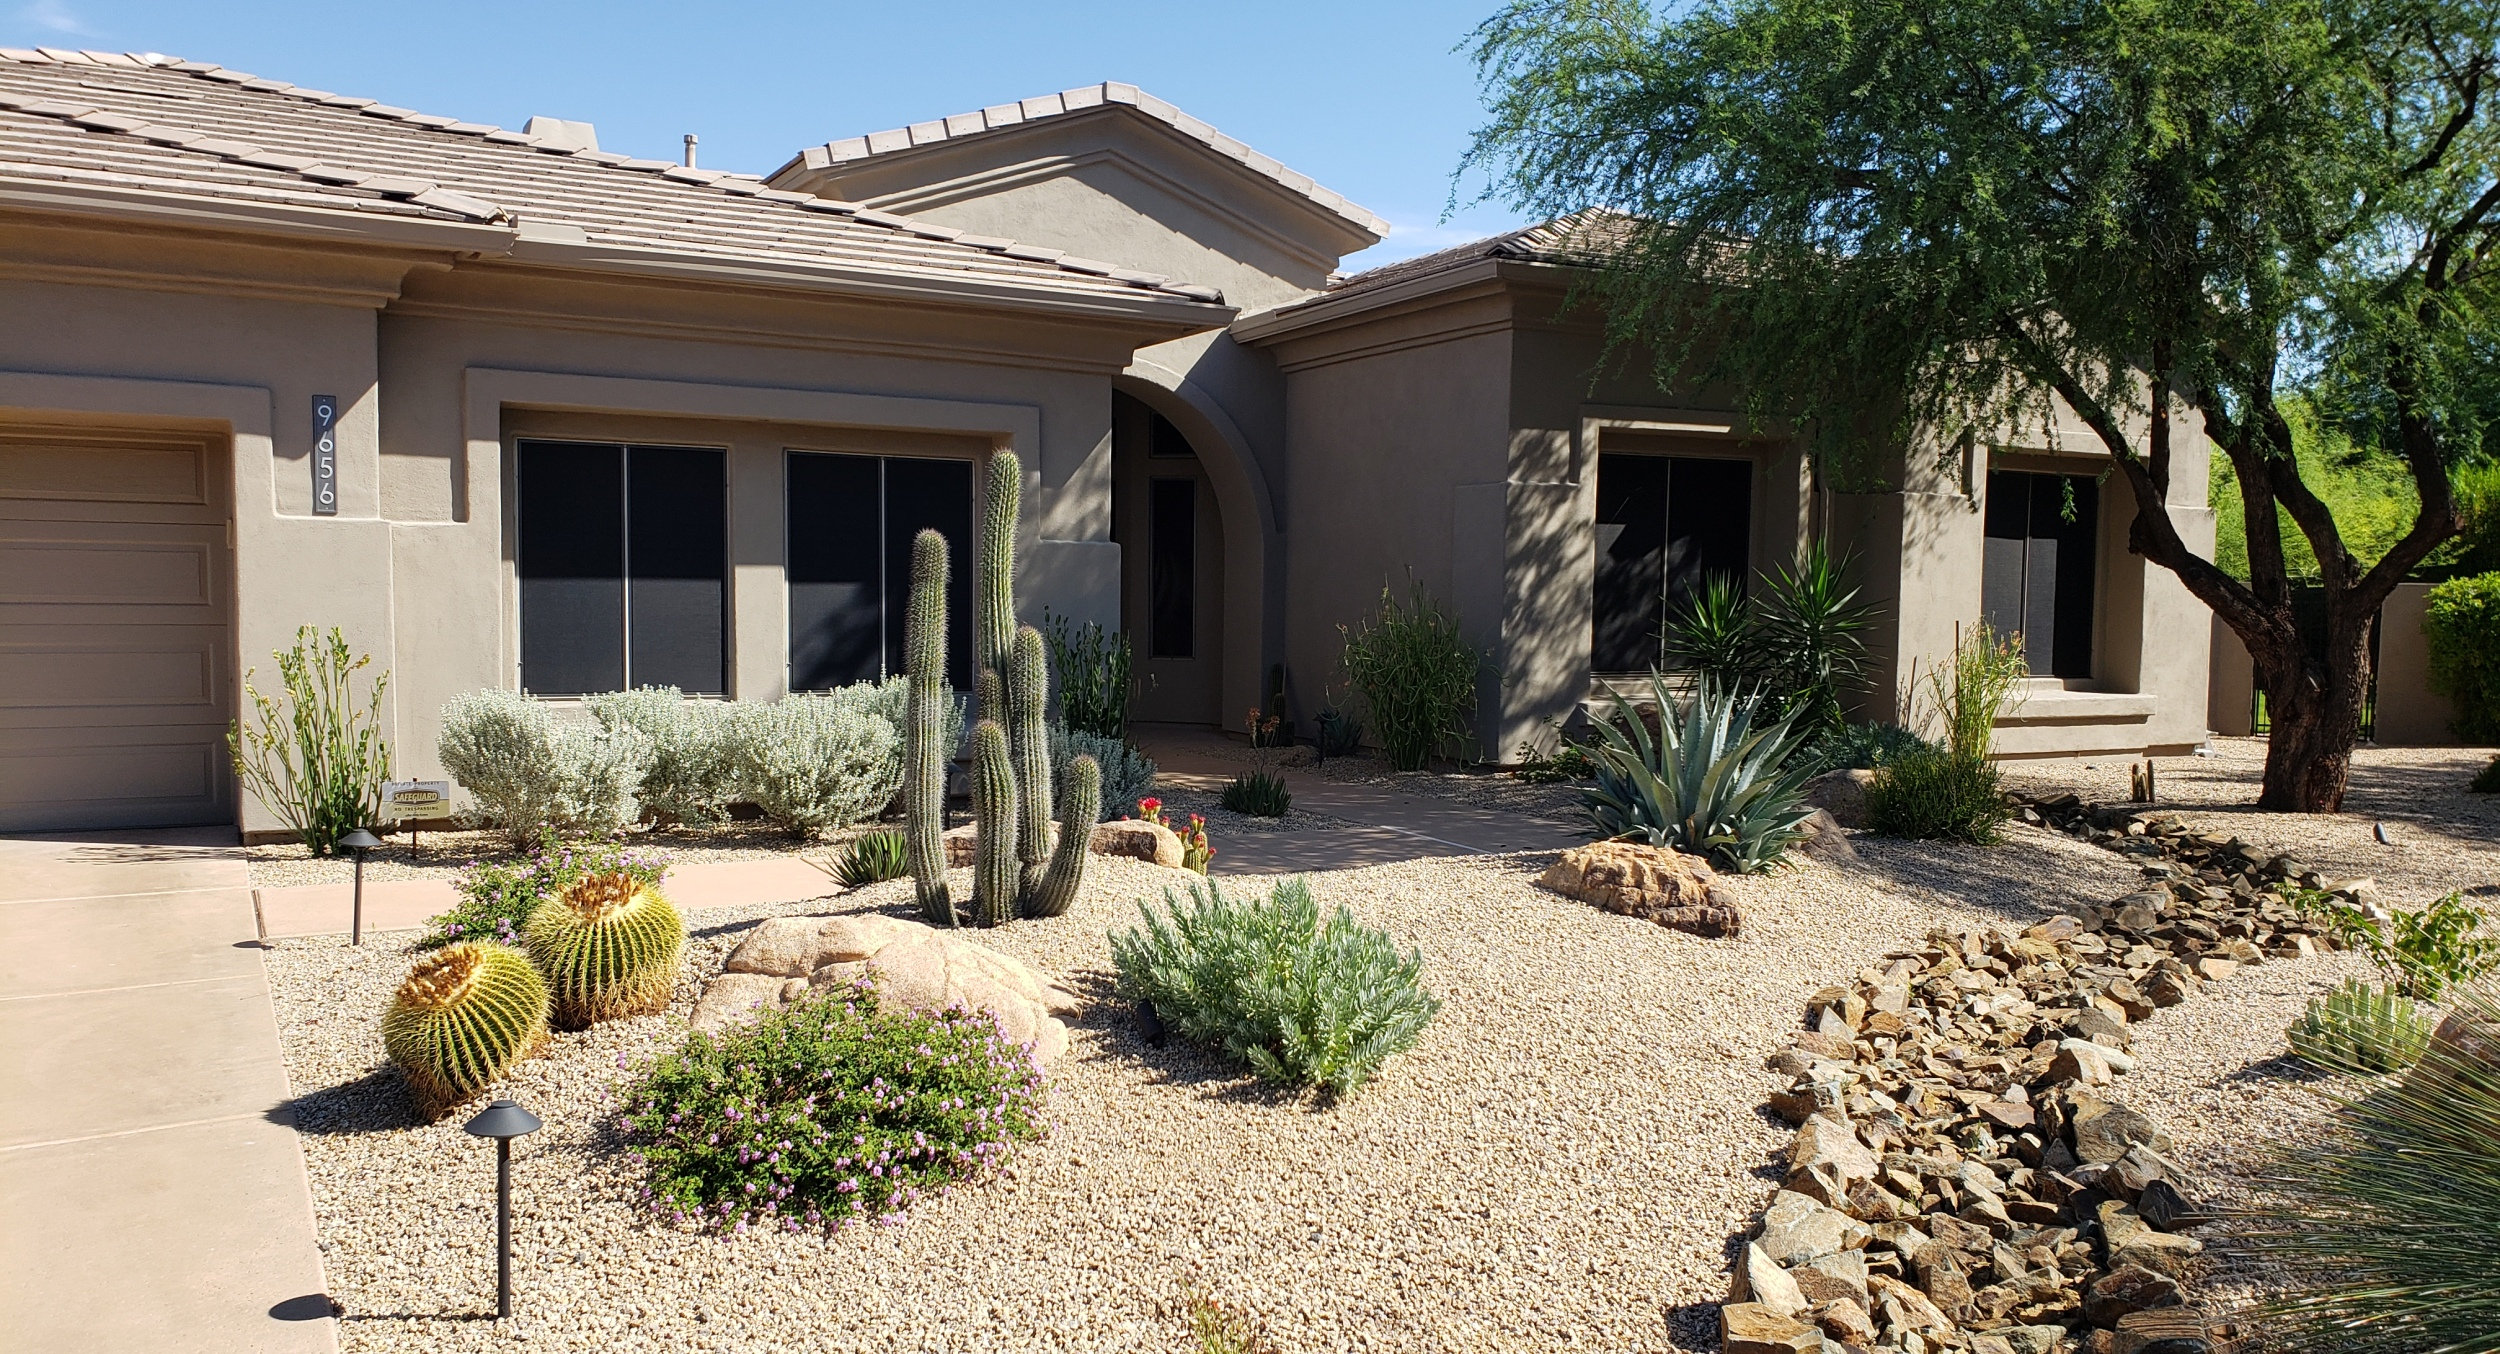 Give your new landscaping in Scottsdale, AZ the best start in your yard with proper watering. You can use the same schedule to keep new landscaping in Phoenix, AZ thriving too.